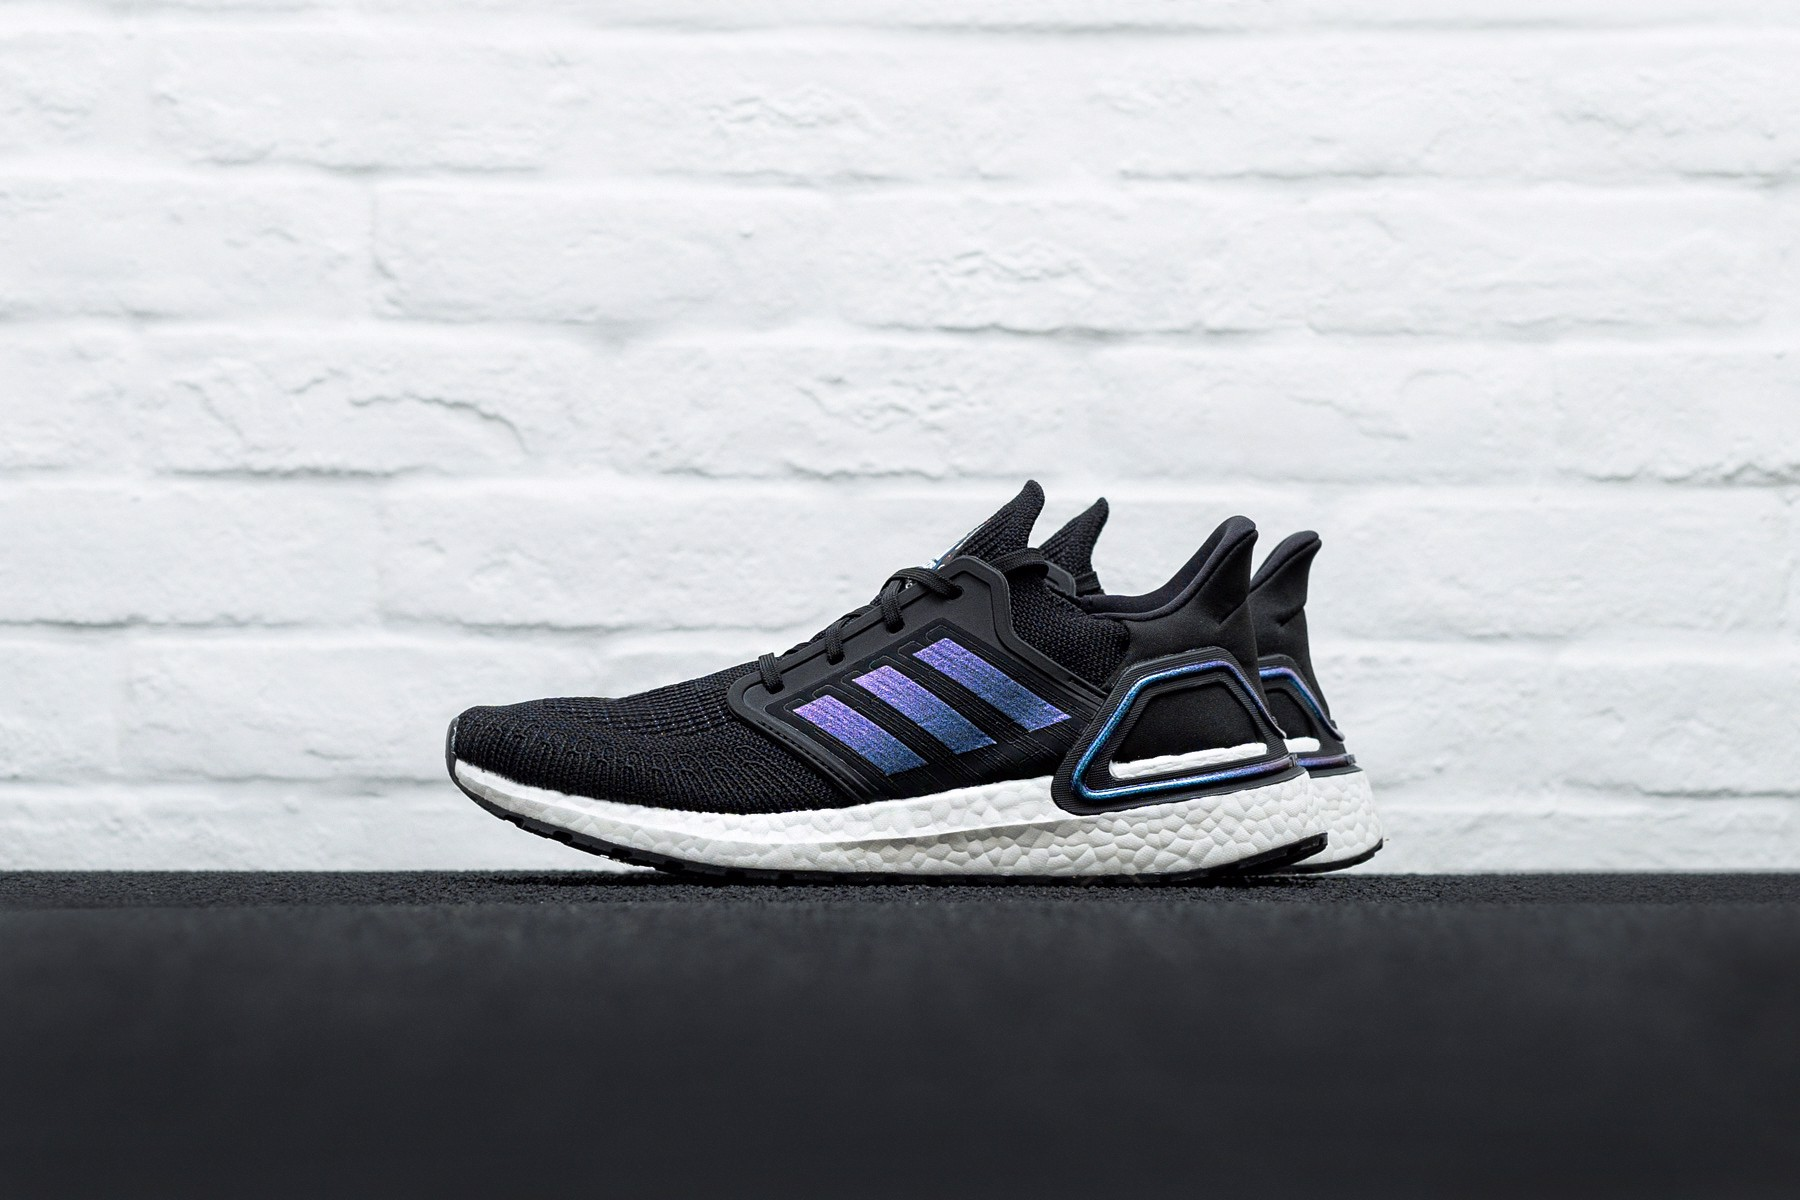 Adidas UltraBoost 20 'ISS US National Lab - Black Blue' EG0692